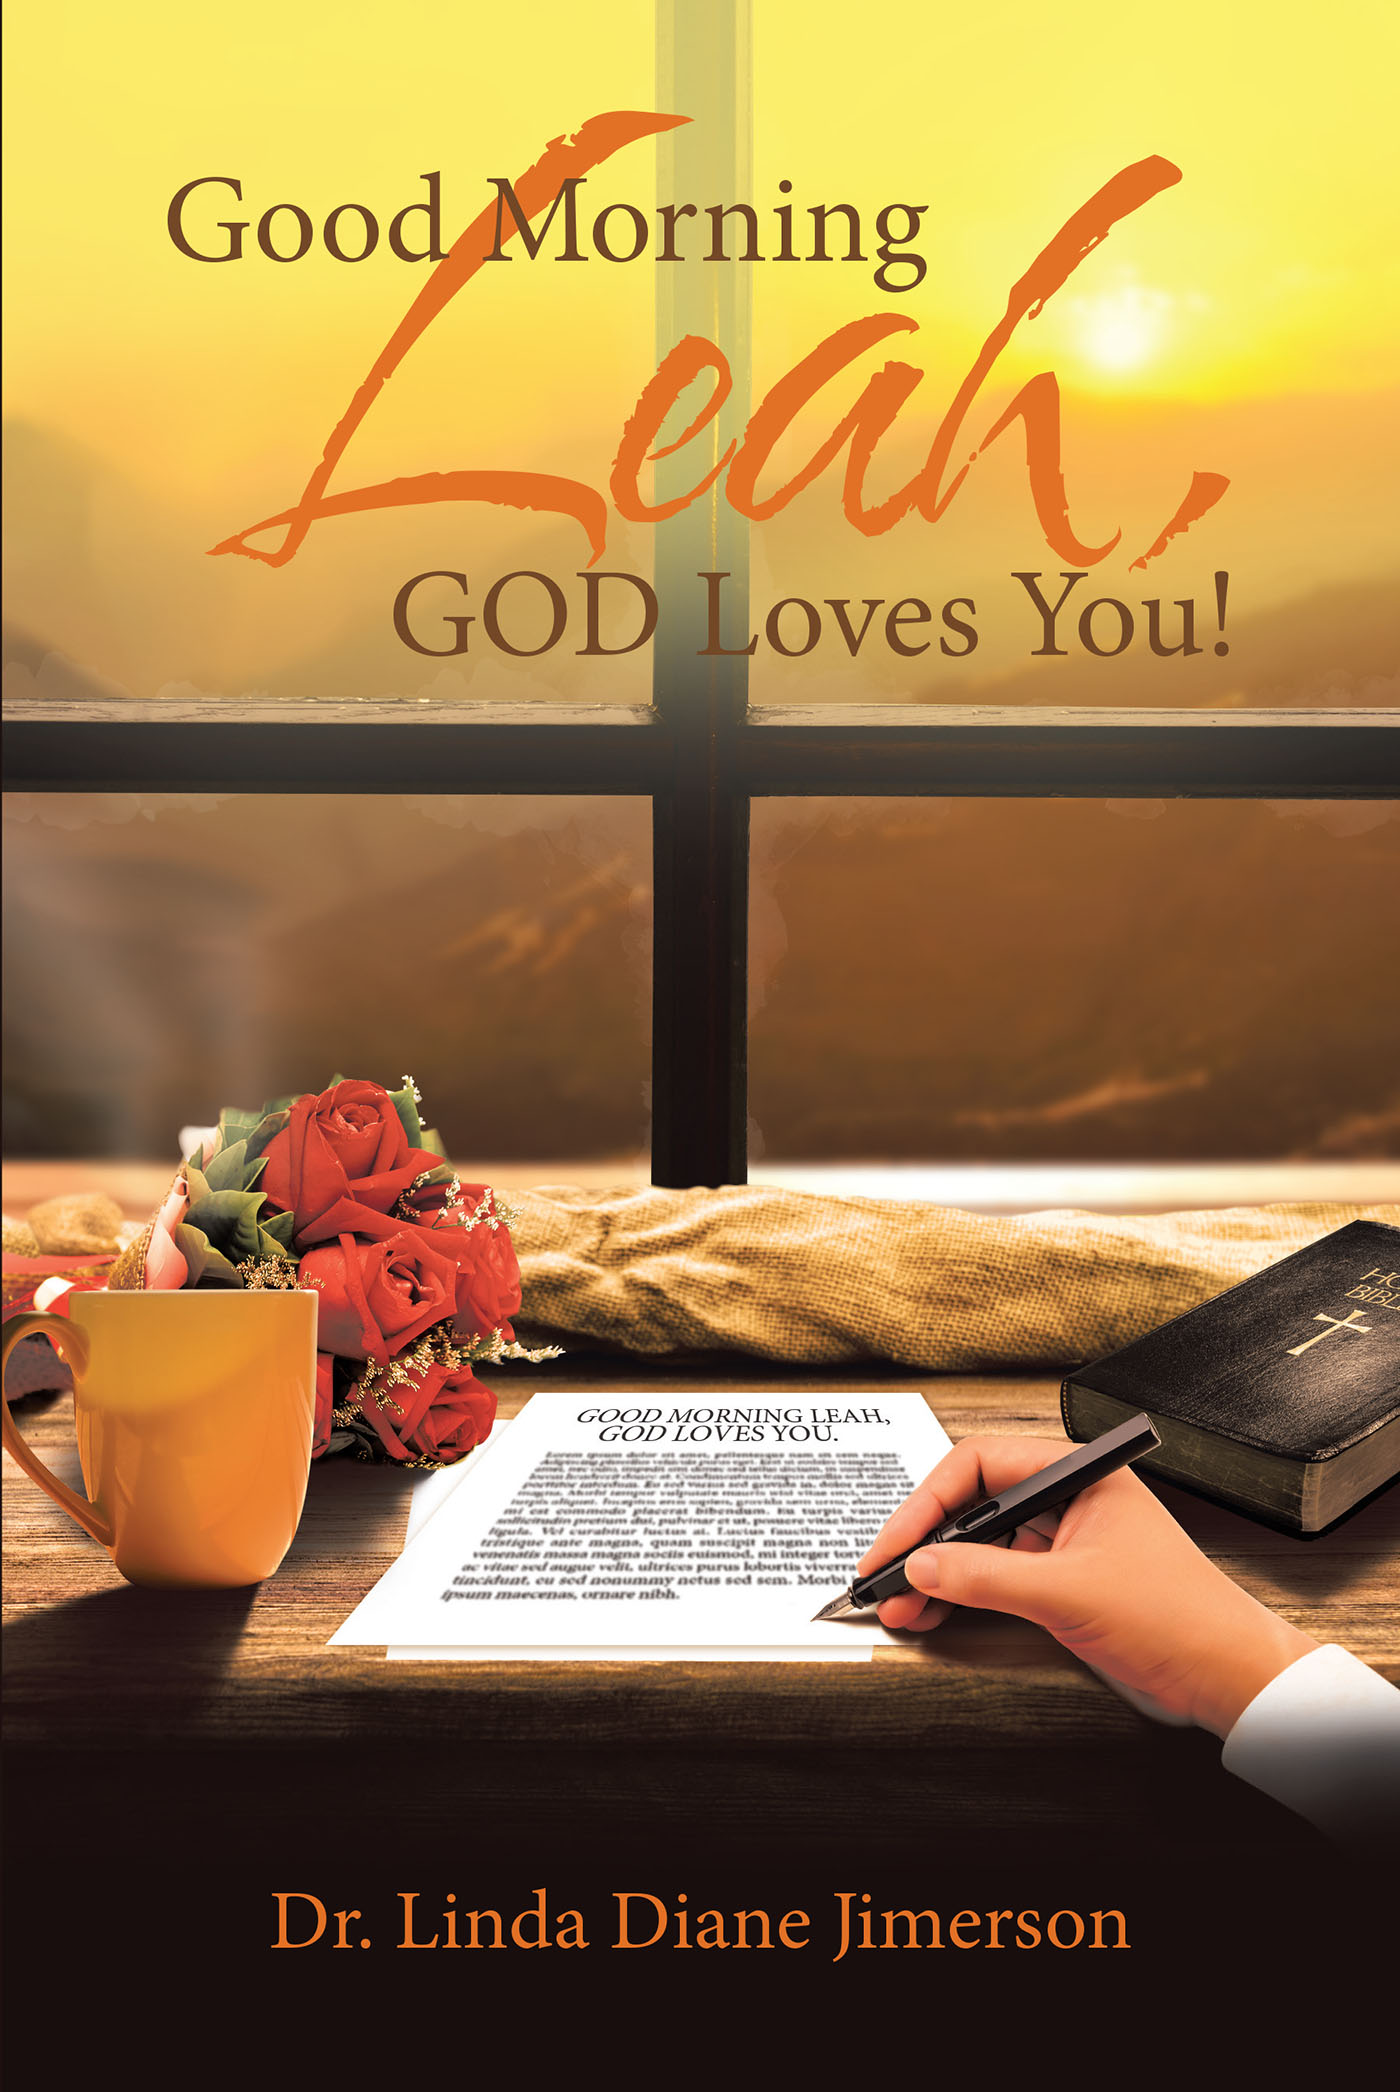 Dr. Linda Diane Jimersons Newly Released Good Morning